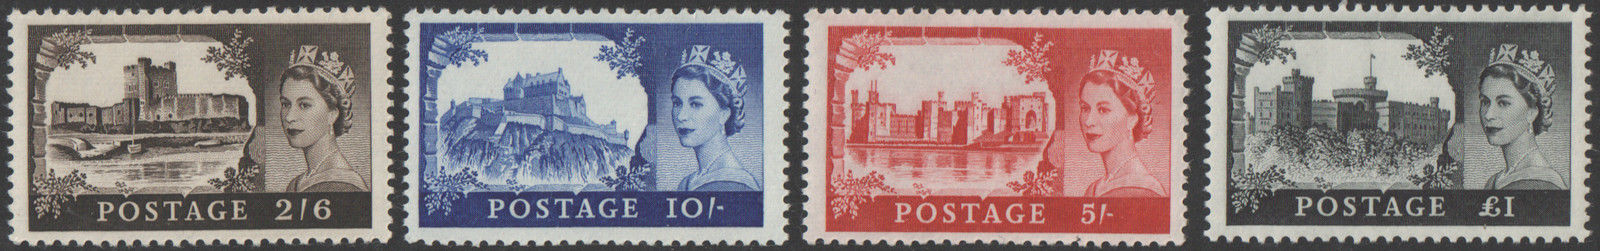 SG759 / 62 No Watermark High Value Castles. Unmounted mint set.